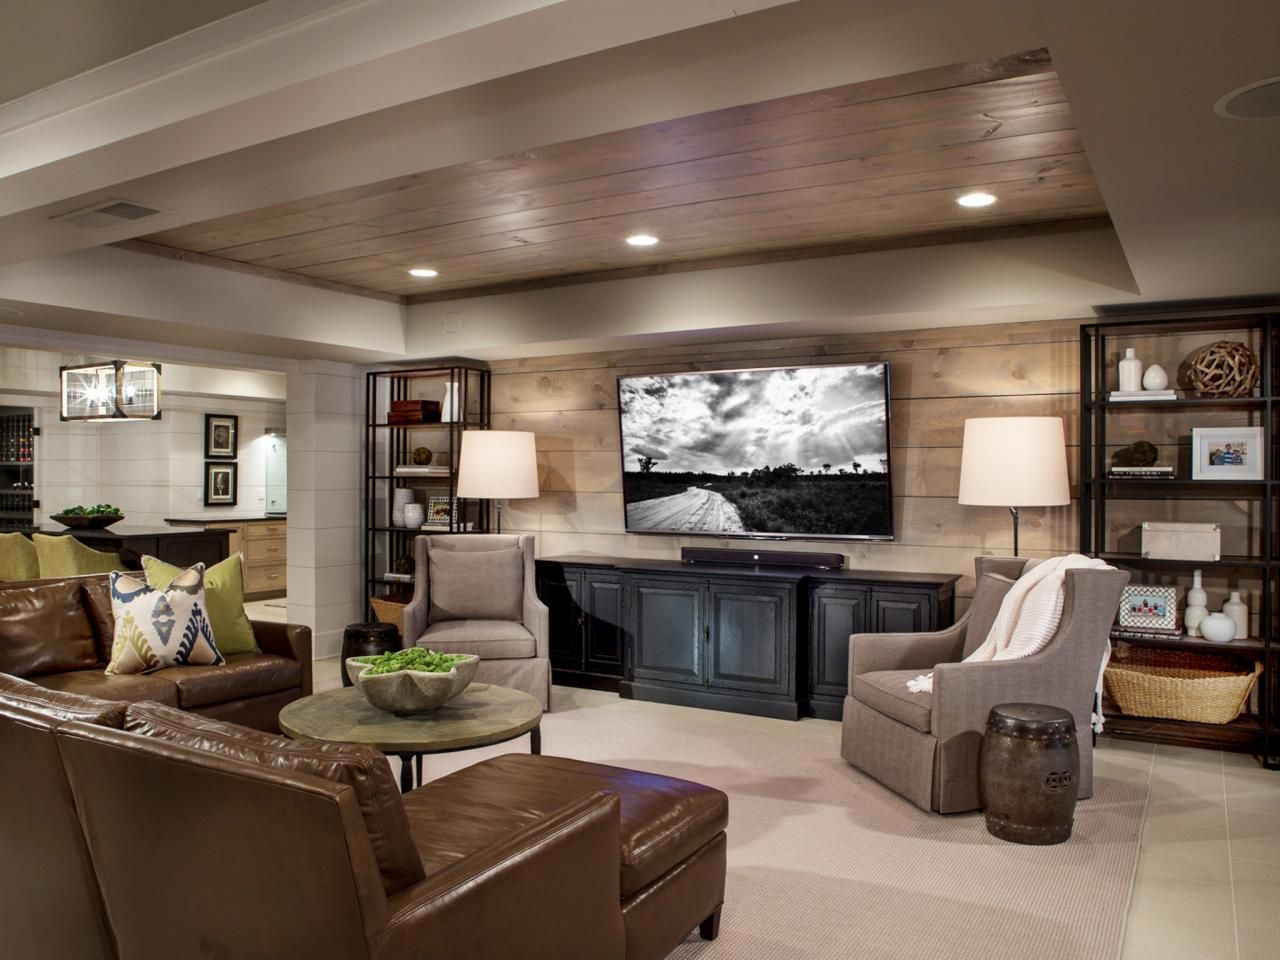 HGTV Shares The Amazing Transformation Of An Unfinished Basement Into A